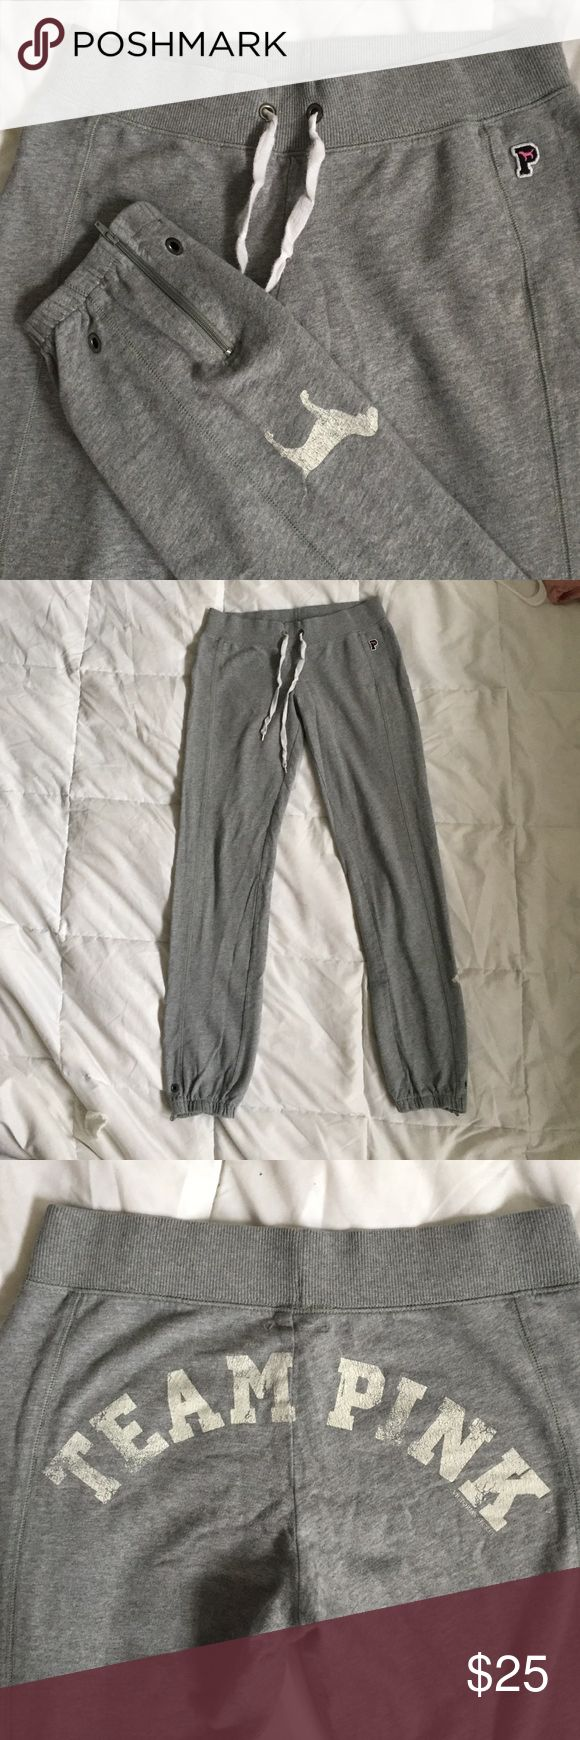 Victoria's Secret Team Pink Gray Sweatpants Barely worn VS secret gray slim fit sweatpants, size XS fits Small and a snug medium (had my friend who's a Medium because of big hip area try it on & fits her fine but snug on hips)  Has the logo and the dog - letters are faded (design) no rips or tears, only thing upon close inspection is a small barely visible stain on picture. Zipper at the ankles 👖 Victoria's Secret Pants Track Pants & Joggers